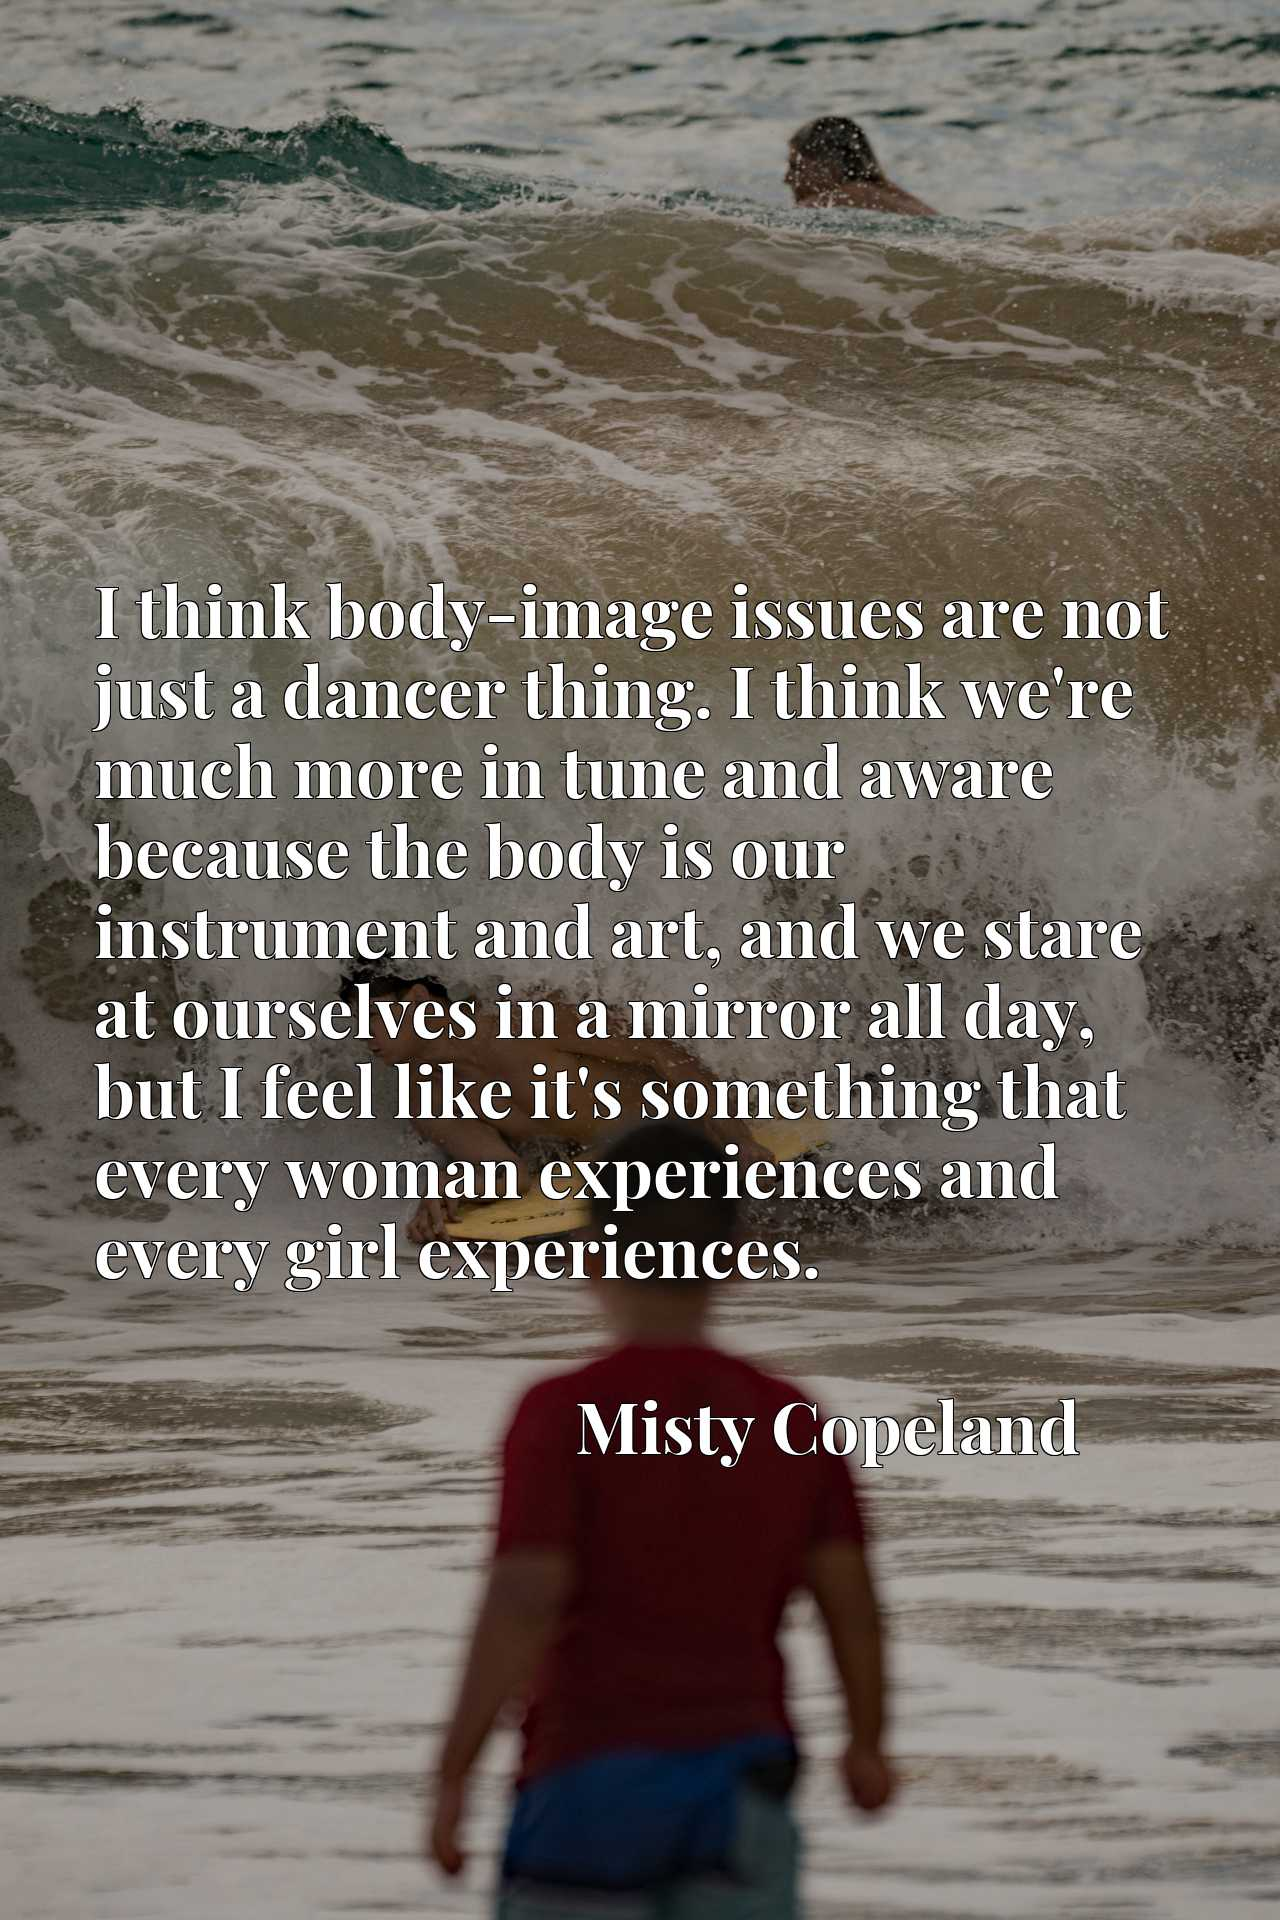 I think body-image issues are not just a dancer thing. I think we're much more in tune and aware because the body is our instrument and art, and we stare at ourselves in a mirror all day, but I feel like it's something that every woman experiences and every girl experiences.